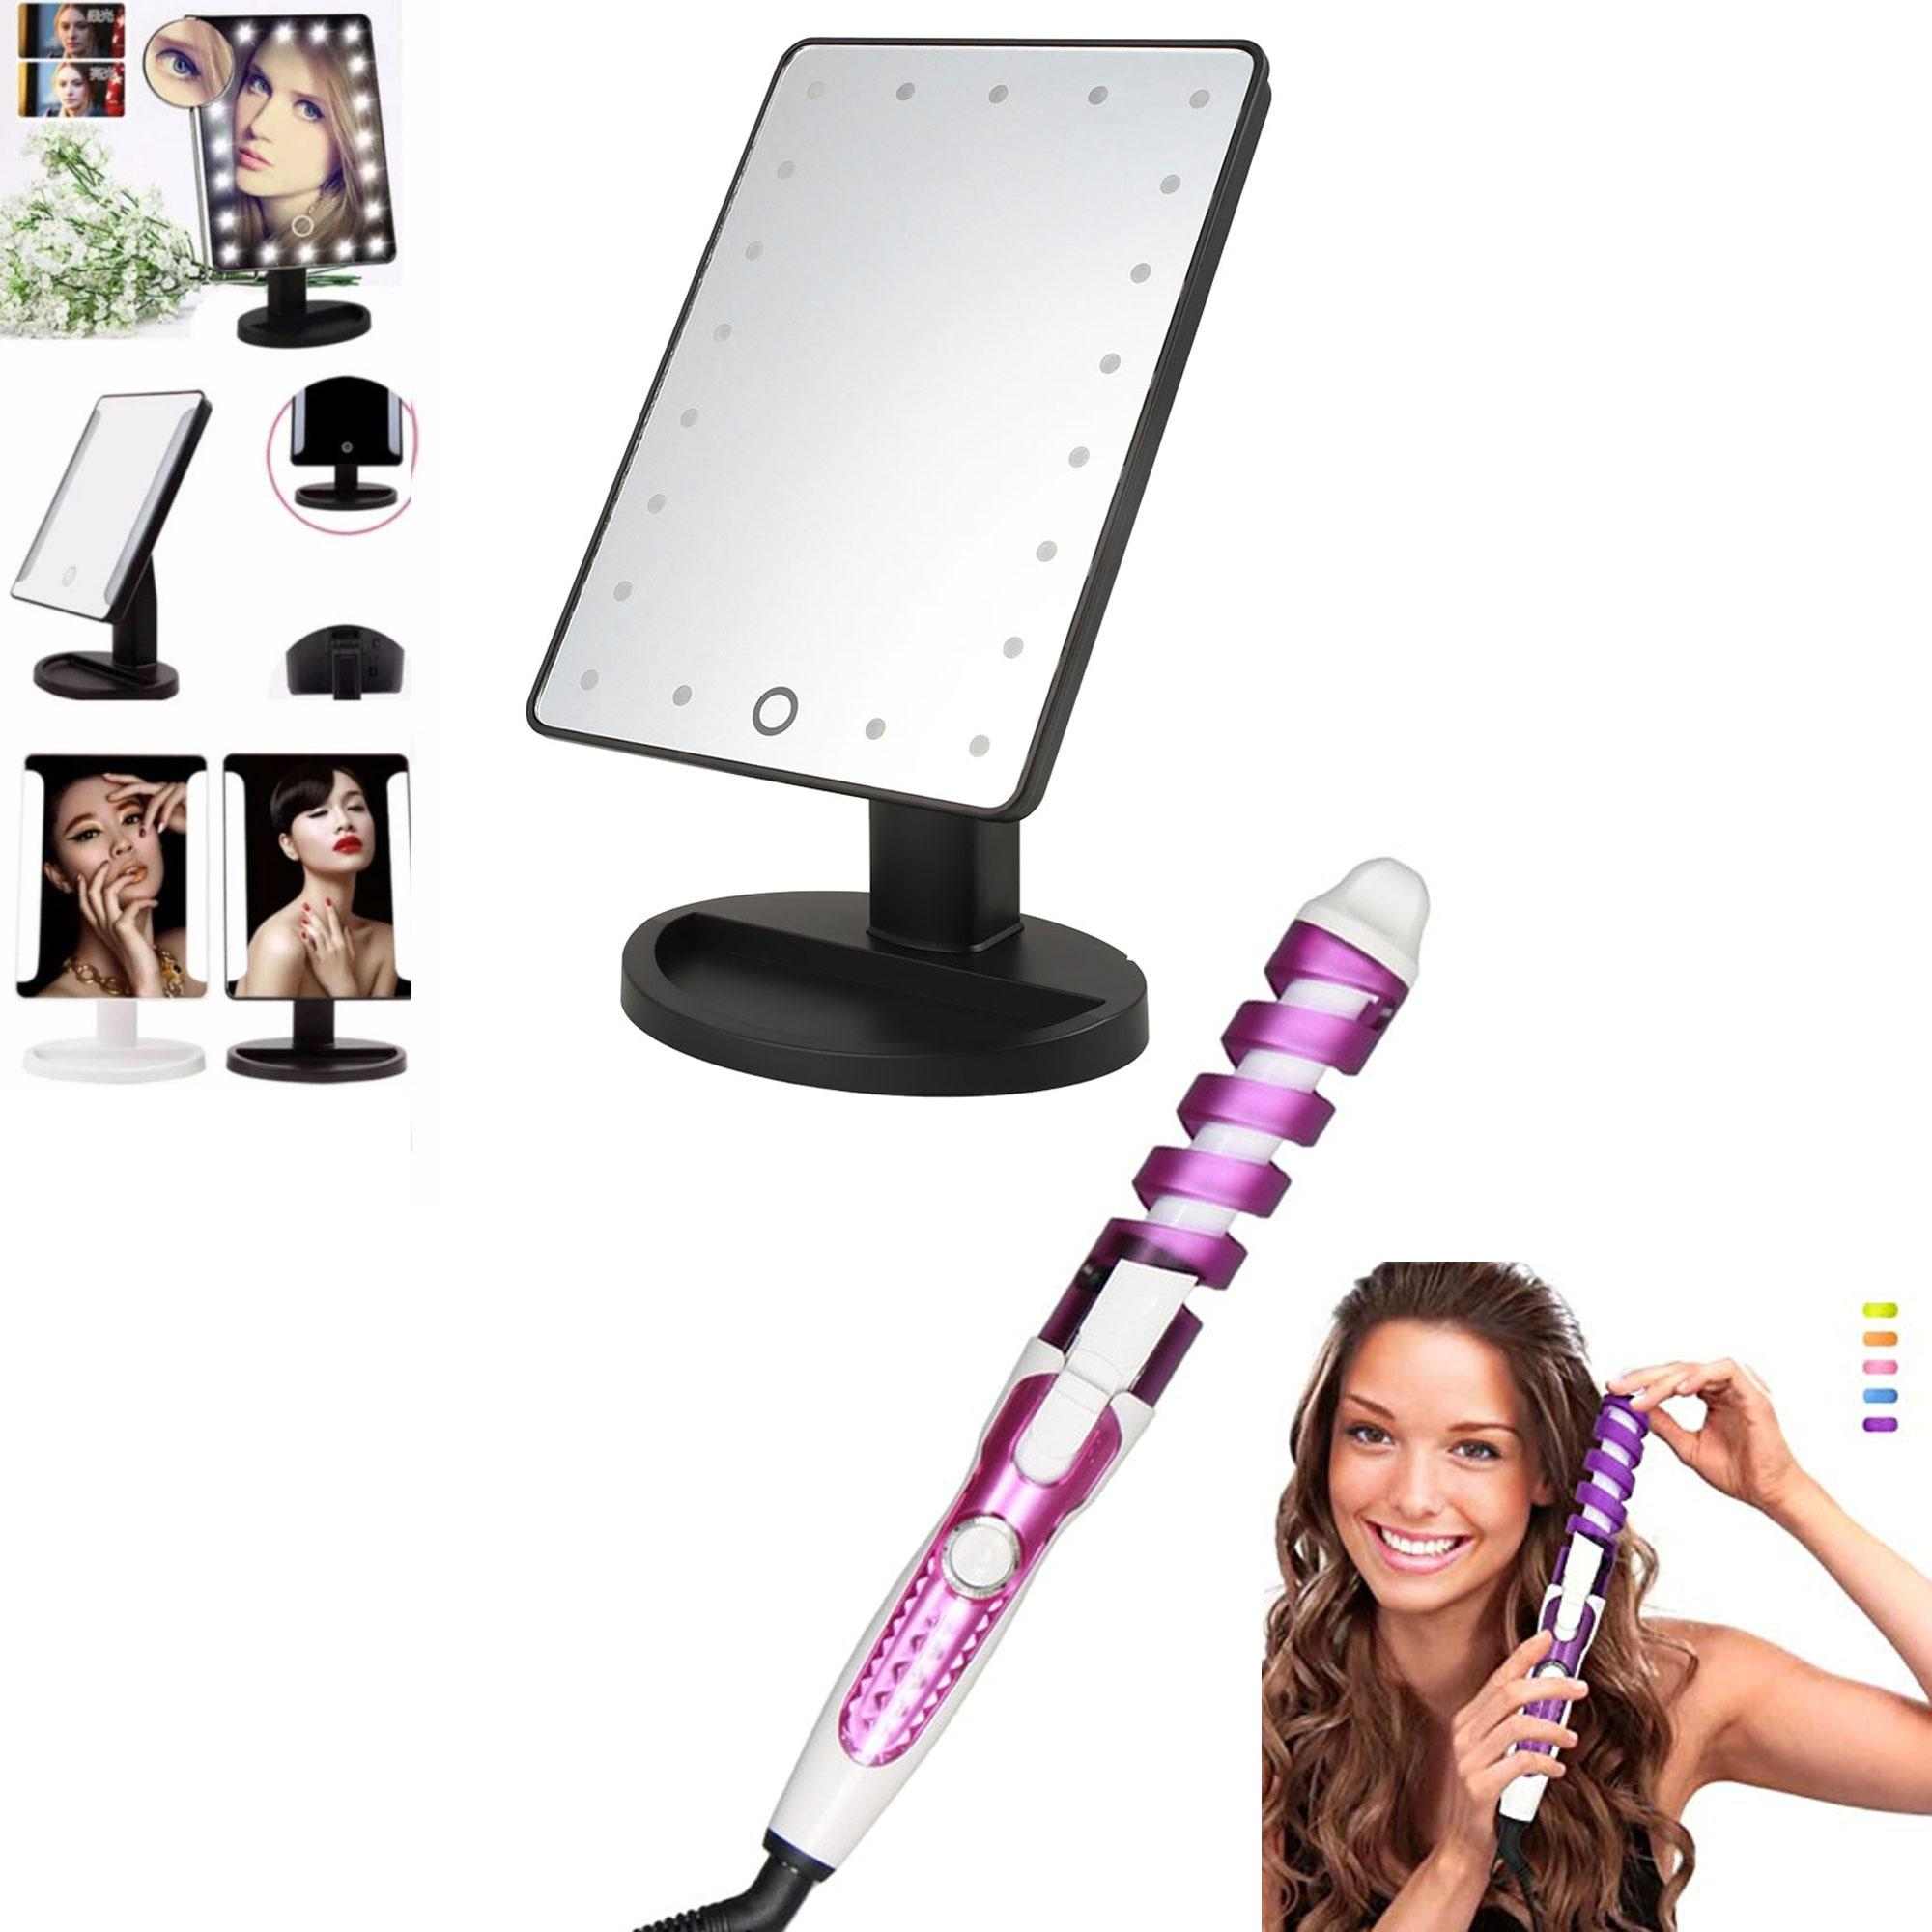 XR-1608 Make Up Vanity Illuminated Desktop Table Makeup Stand Large LED Mirror with 16 LED Light (Black) with RZ-118 Professional Hair Curler (Violet/White) Philippines